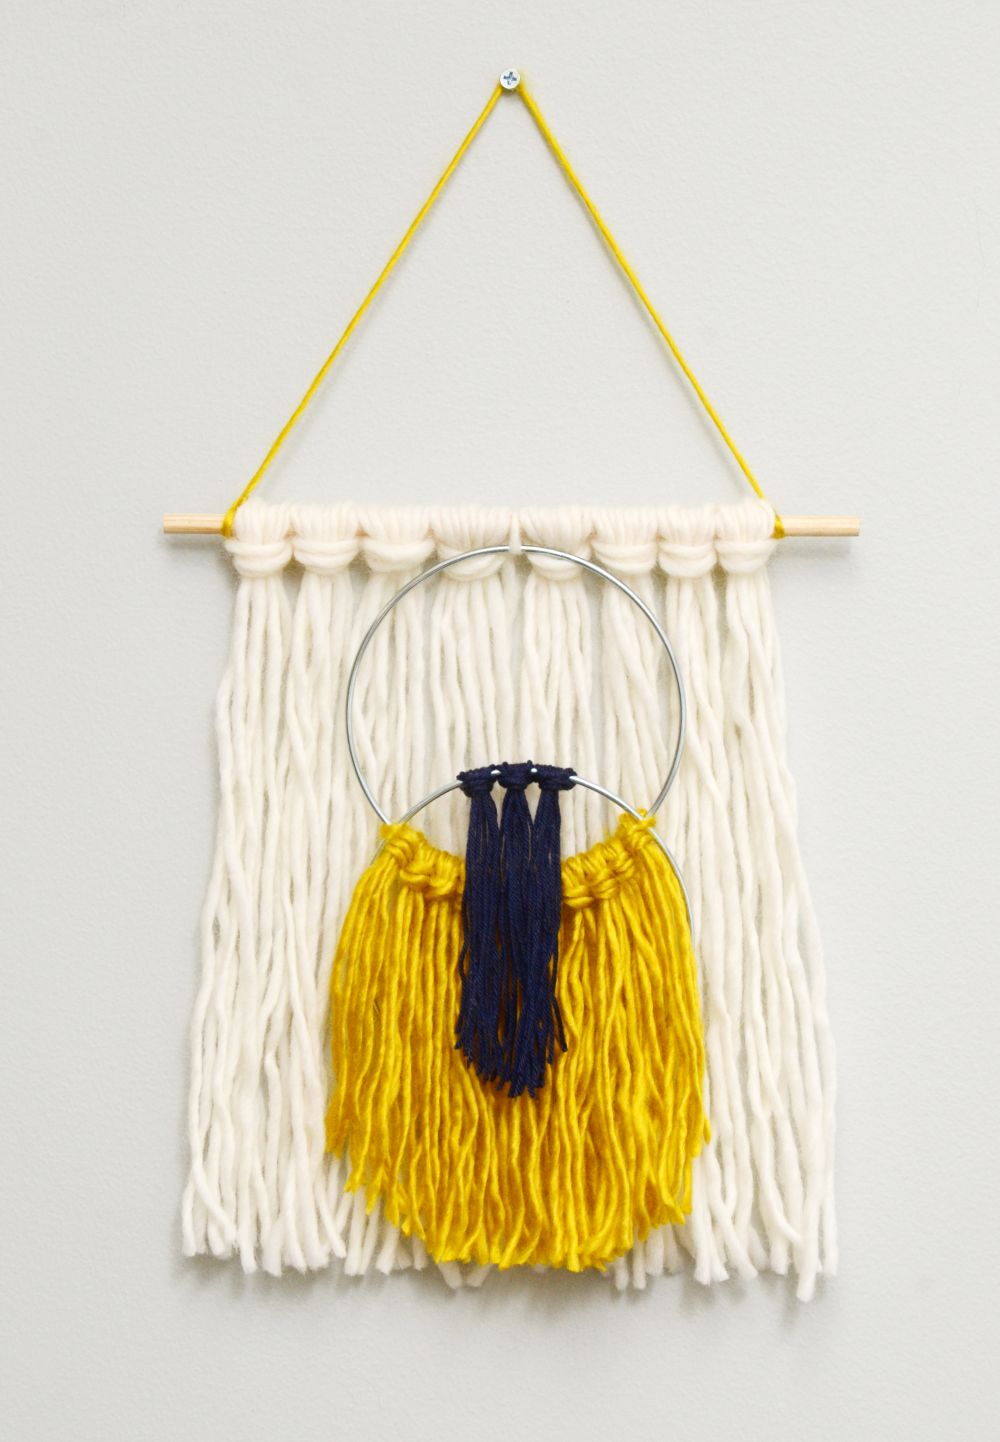 How To Make Yarn Tassels – Easy Wall Hanging